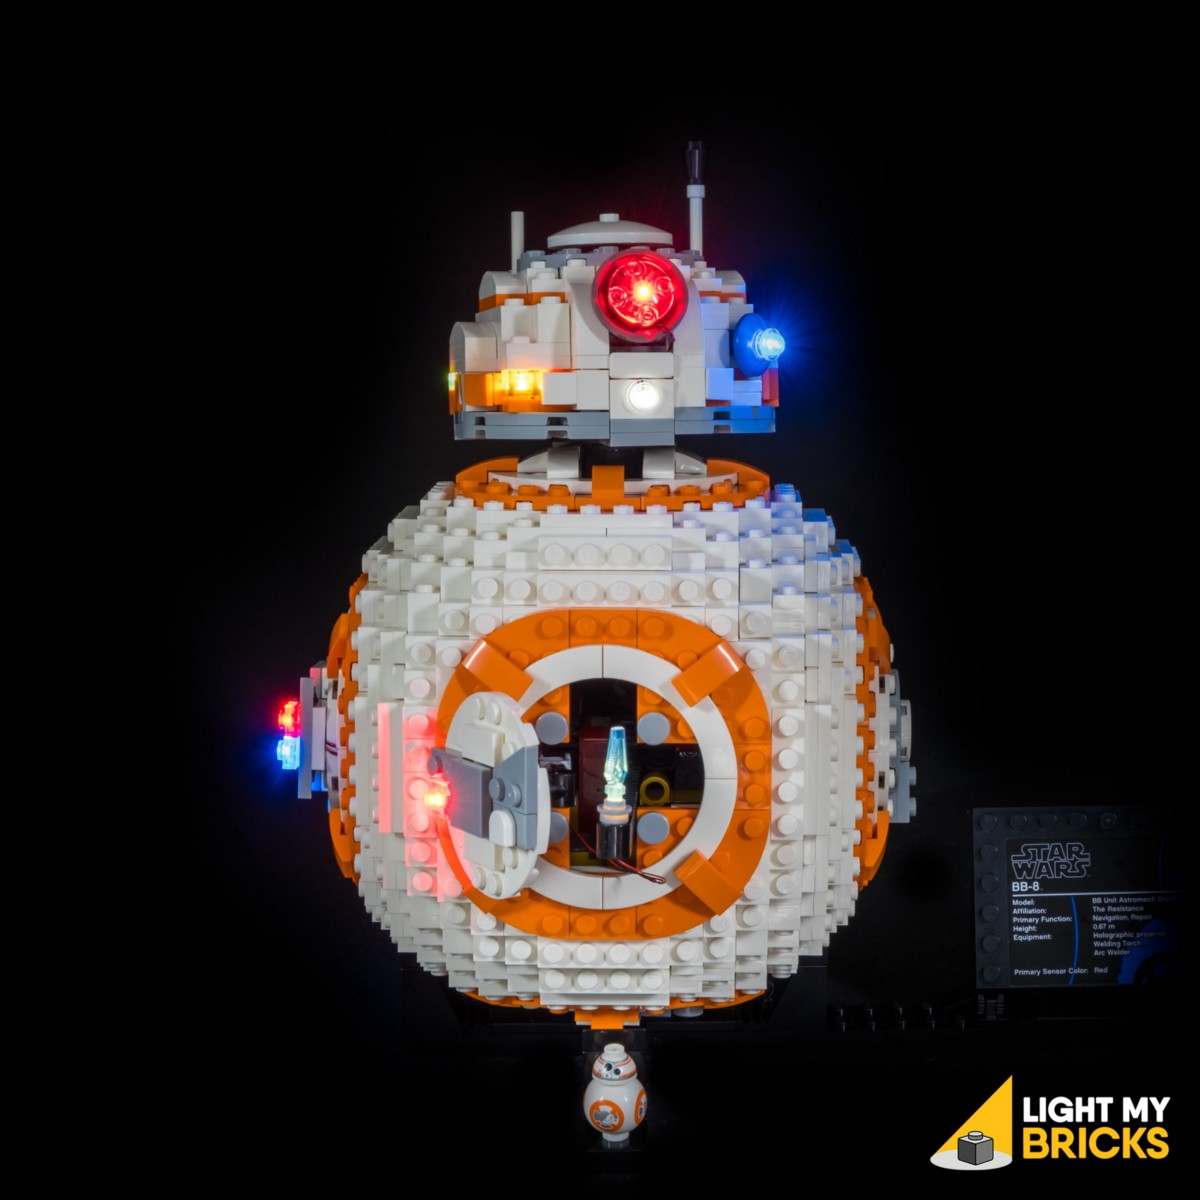 Light My Bricks Bb 8 Lighting Kit Medium Astro Led Torch Circuit This Finally Completes Installation Of The Now Turn On Your Battery Pack And Enjoy